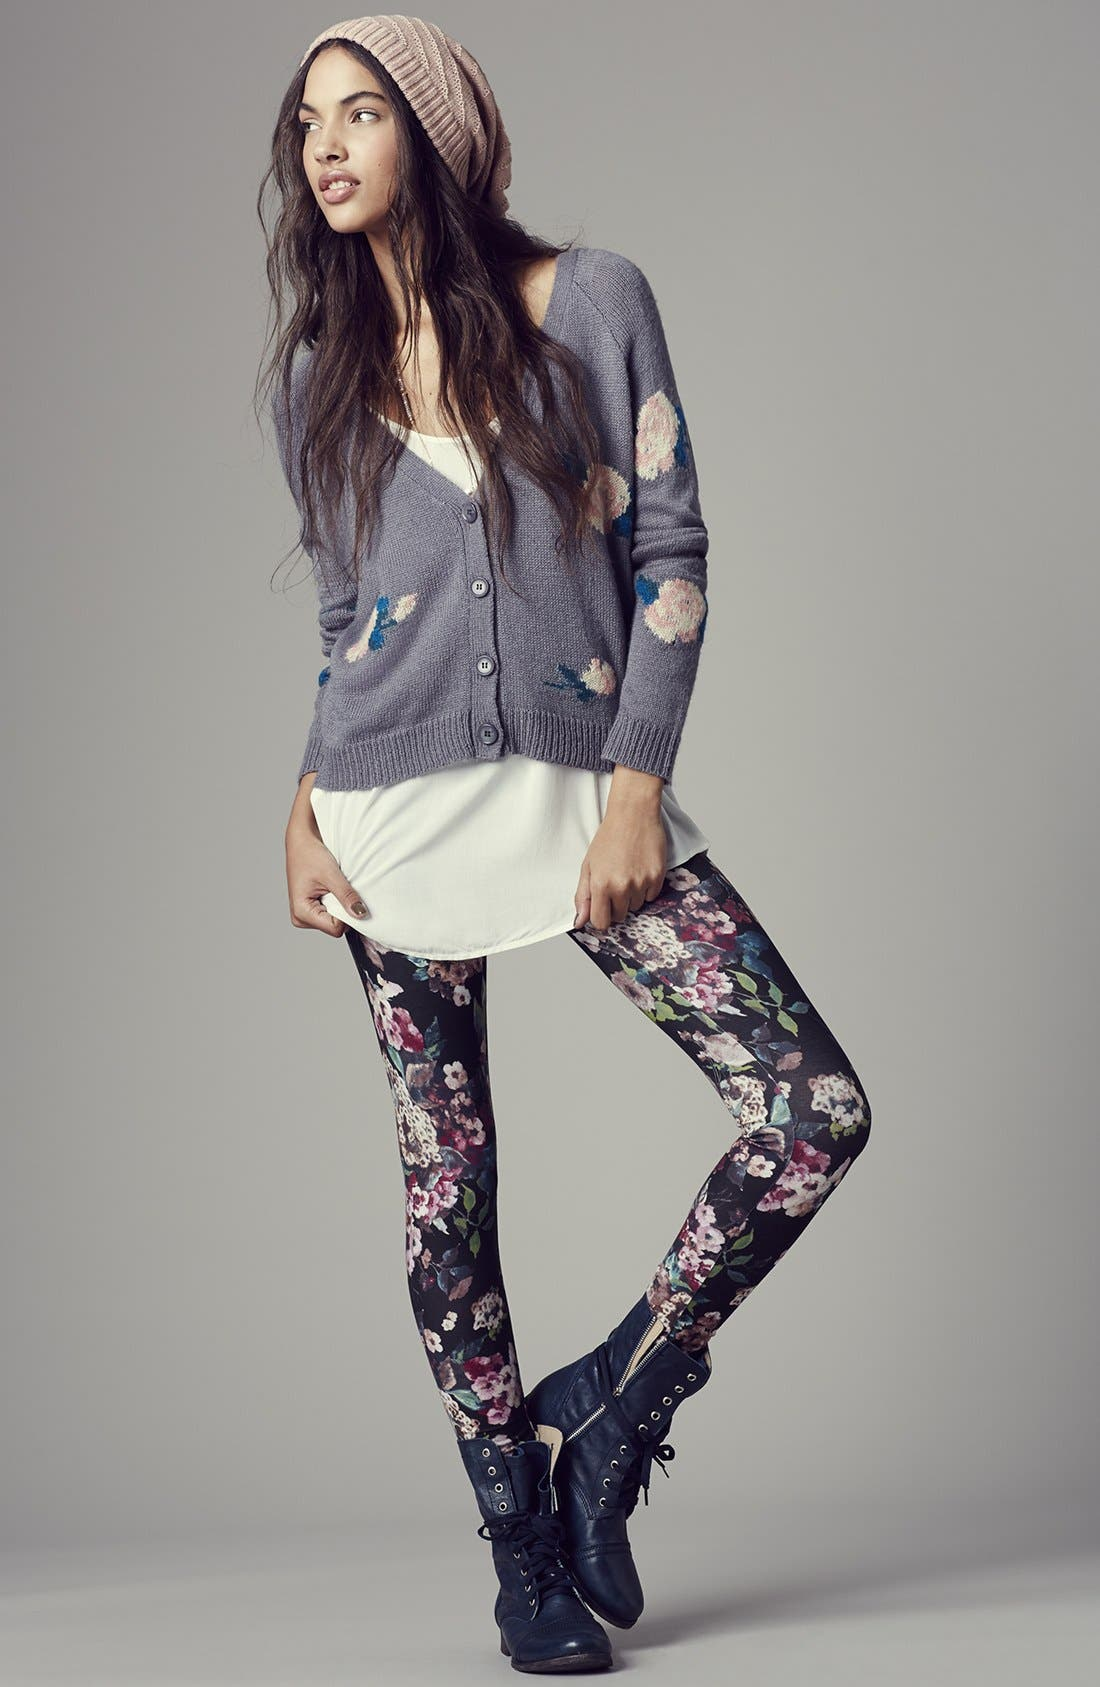 Main Image - Love by Design Cardigan, Rubbish® Tank & Mimi Chica Leggings